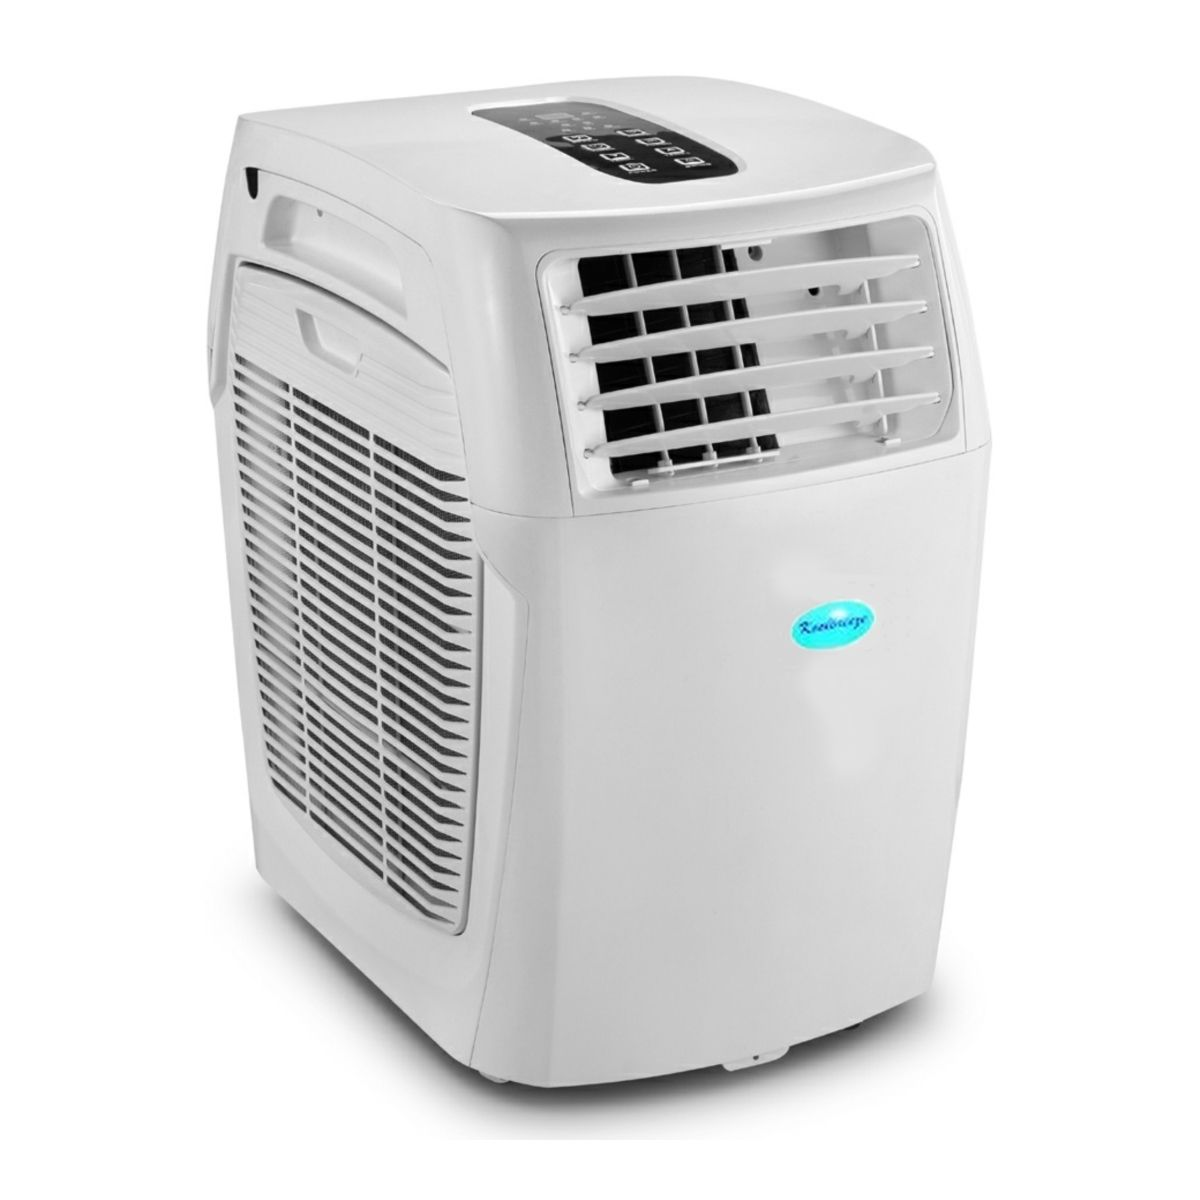 Climateasy 18 Compact Heating And Cooling Portable Air